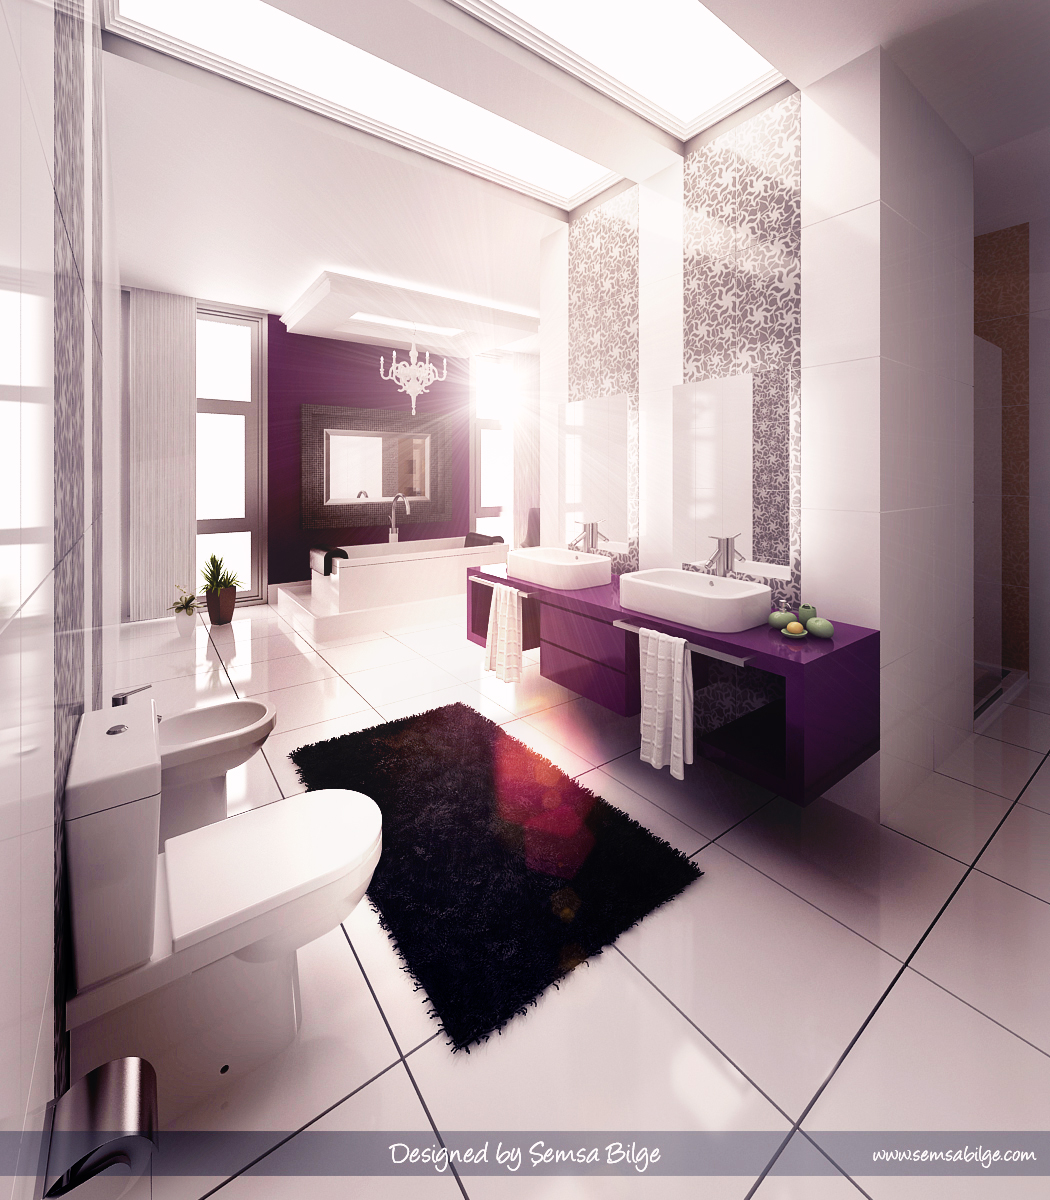 Inspiring bathroom designs for the soul for Designer bathroom decor